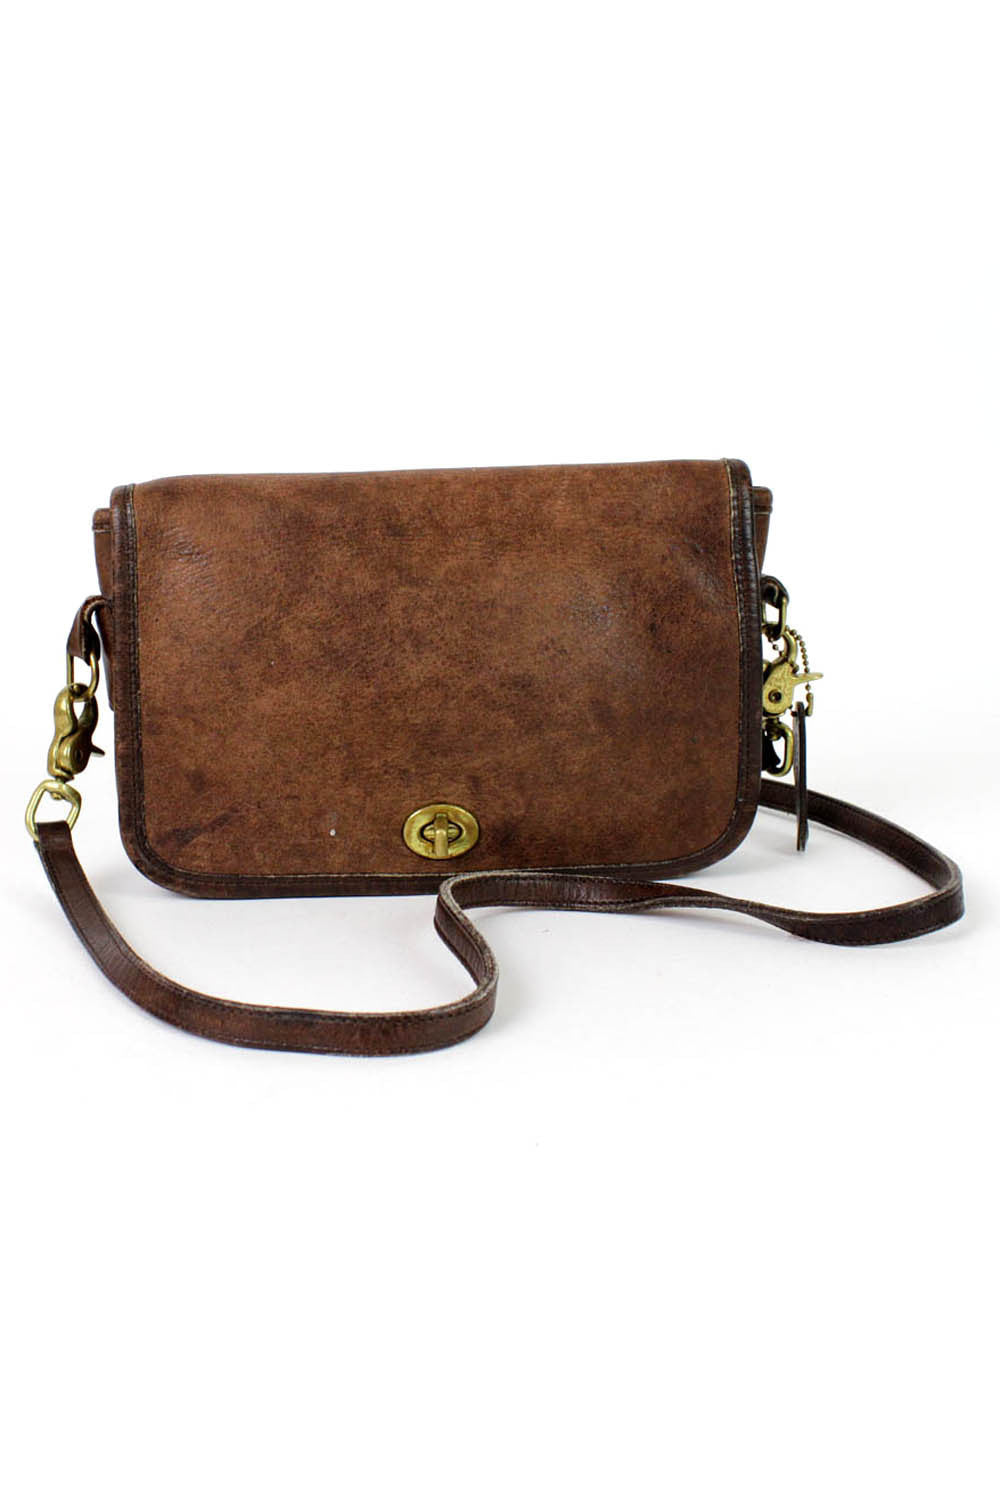 Coach distressed crossbody